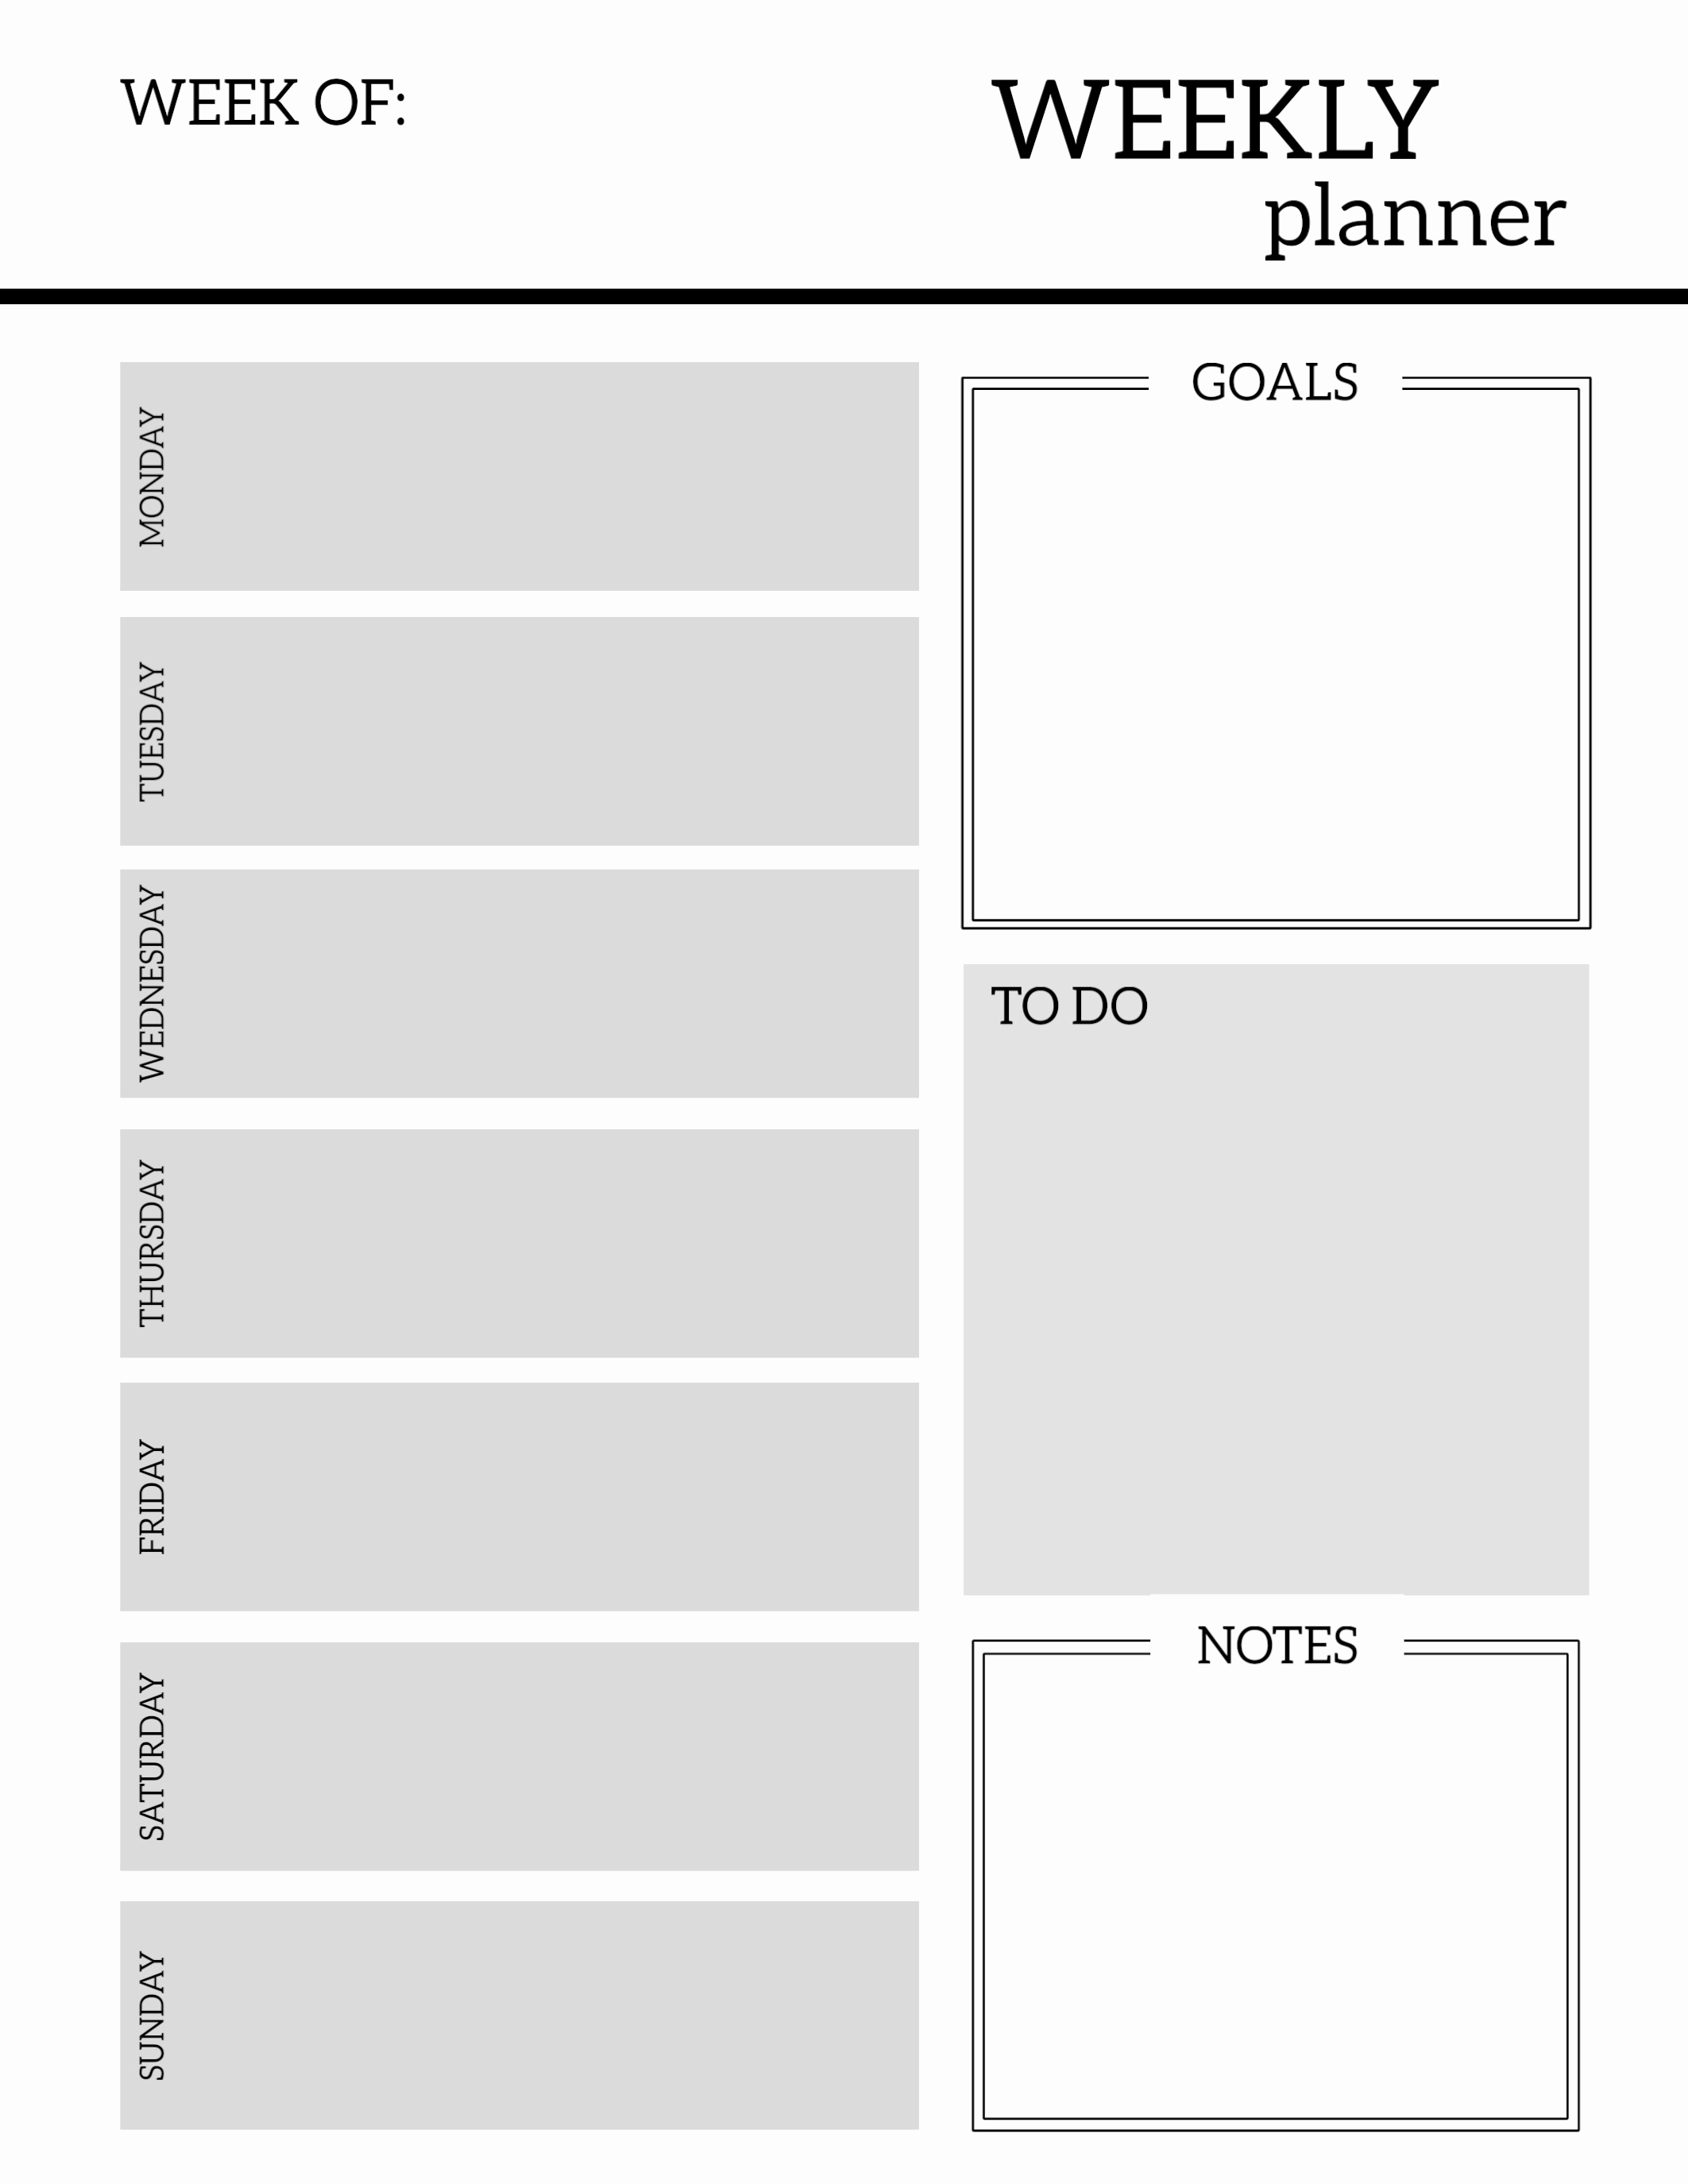 Printable Weekly Planner Template Awesome Free Printable Weekly Planner Pages Paper Trail Design